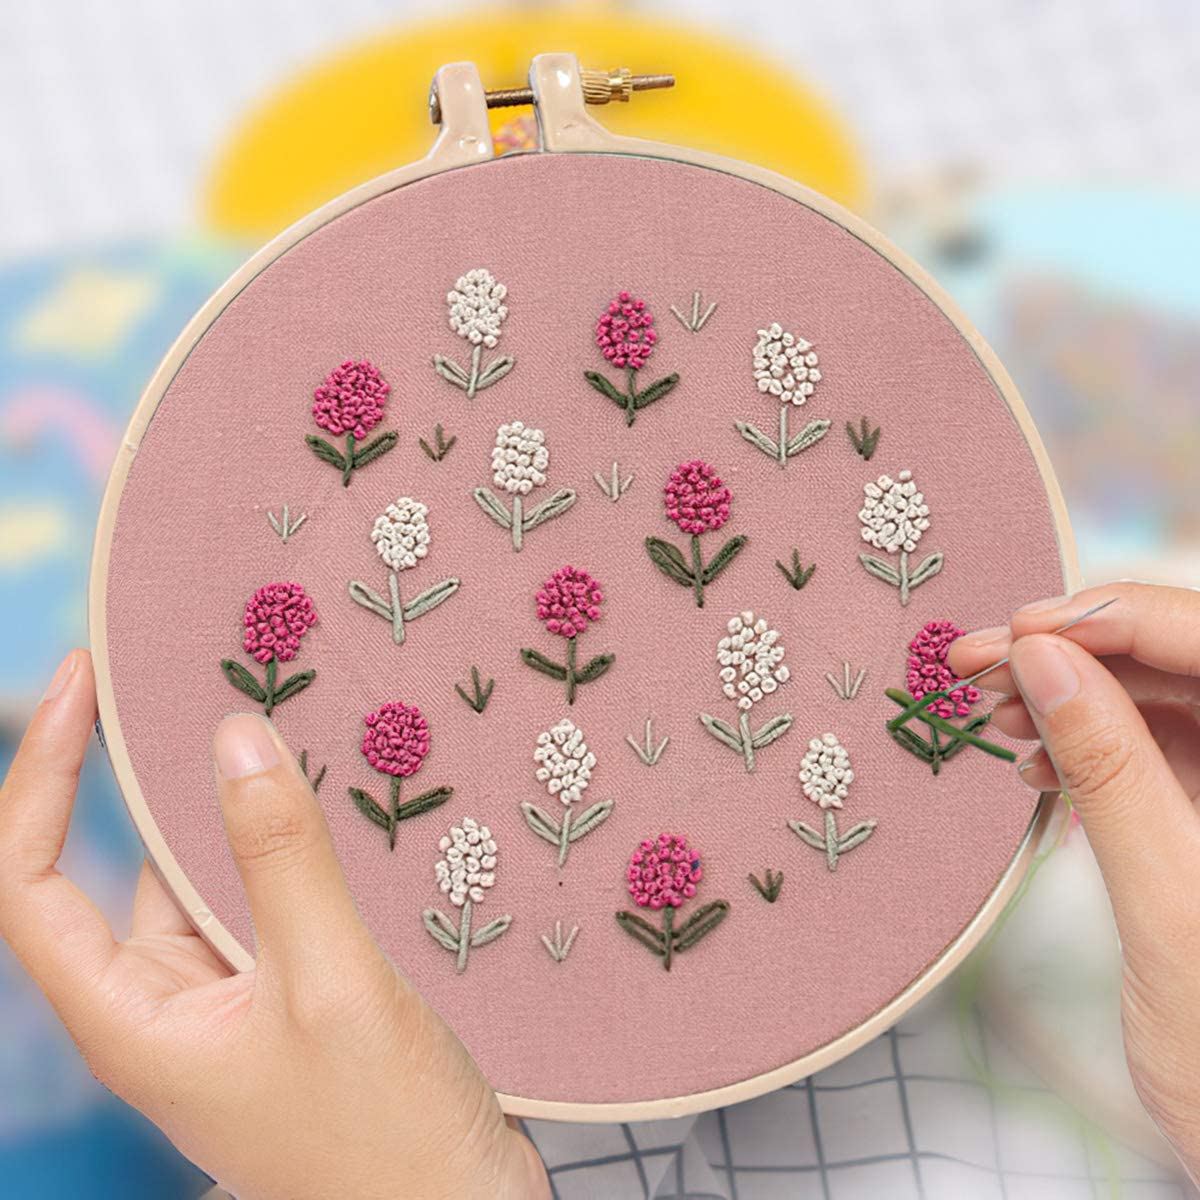 Coin Purse Making Kits with Complete Tools Needlework Kits Embroidery Craft